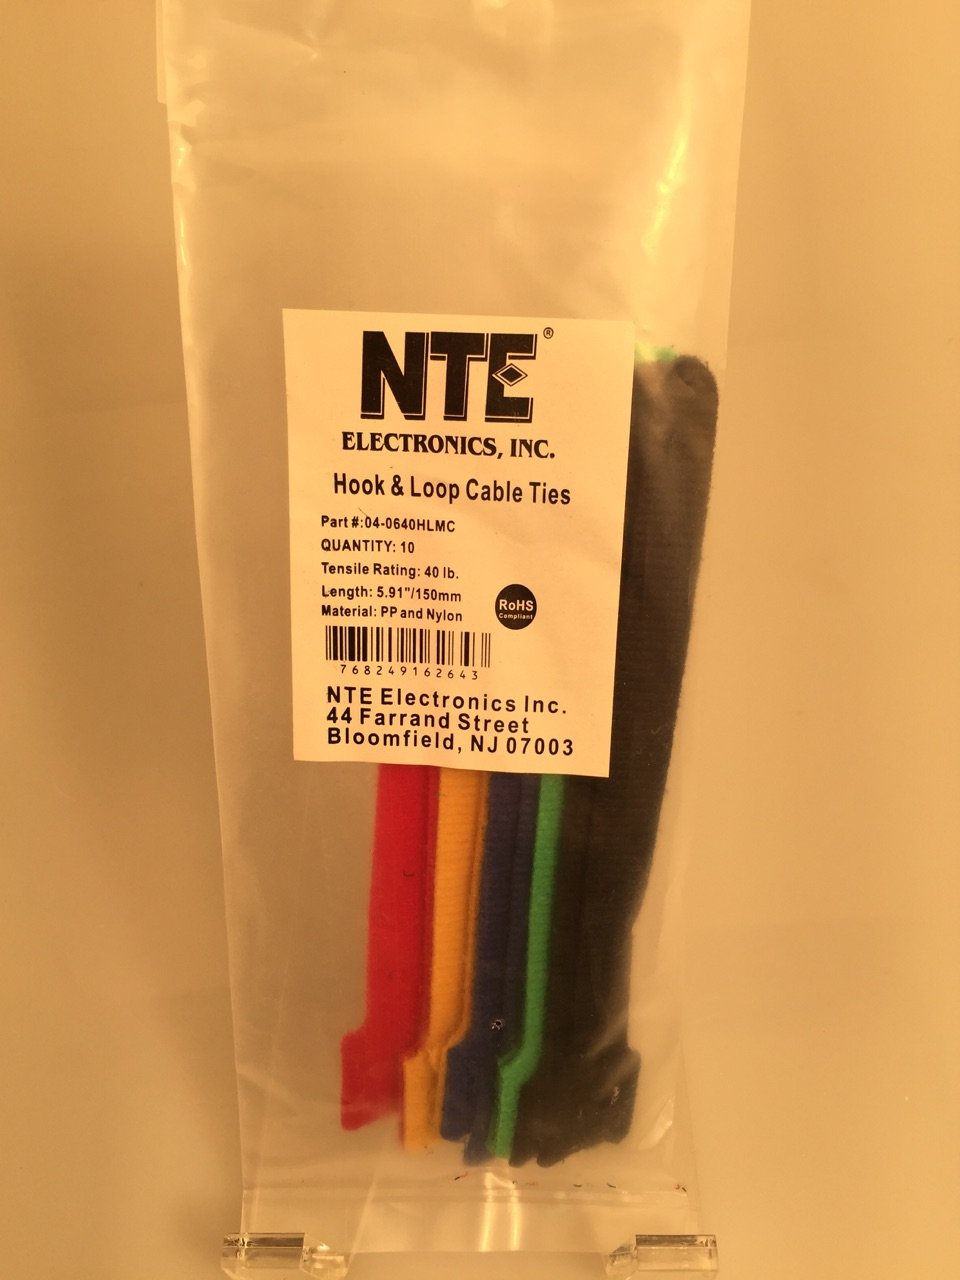 5.91 Length 40 lb NTE Electronics 04-0640HL5 Nylon//Polypropylene Hook and Loop Cable Ties 0.470 Width Green Pack of 10 Tensile Strength 5.91 Length 0.470 Width Inc.